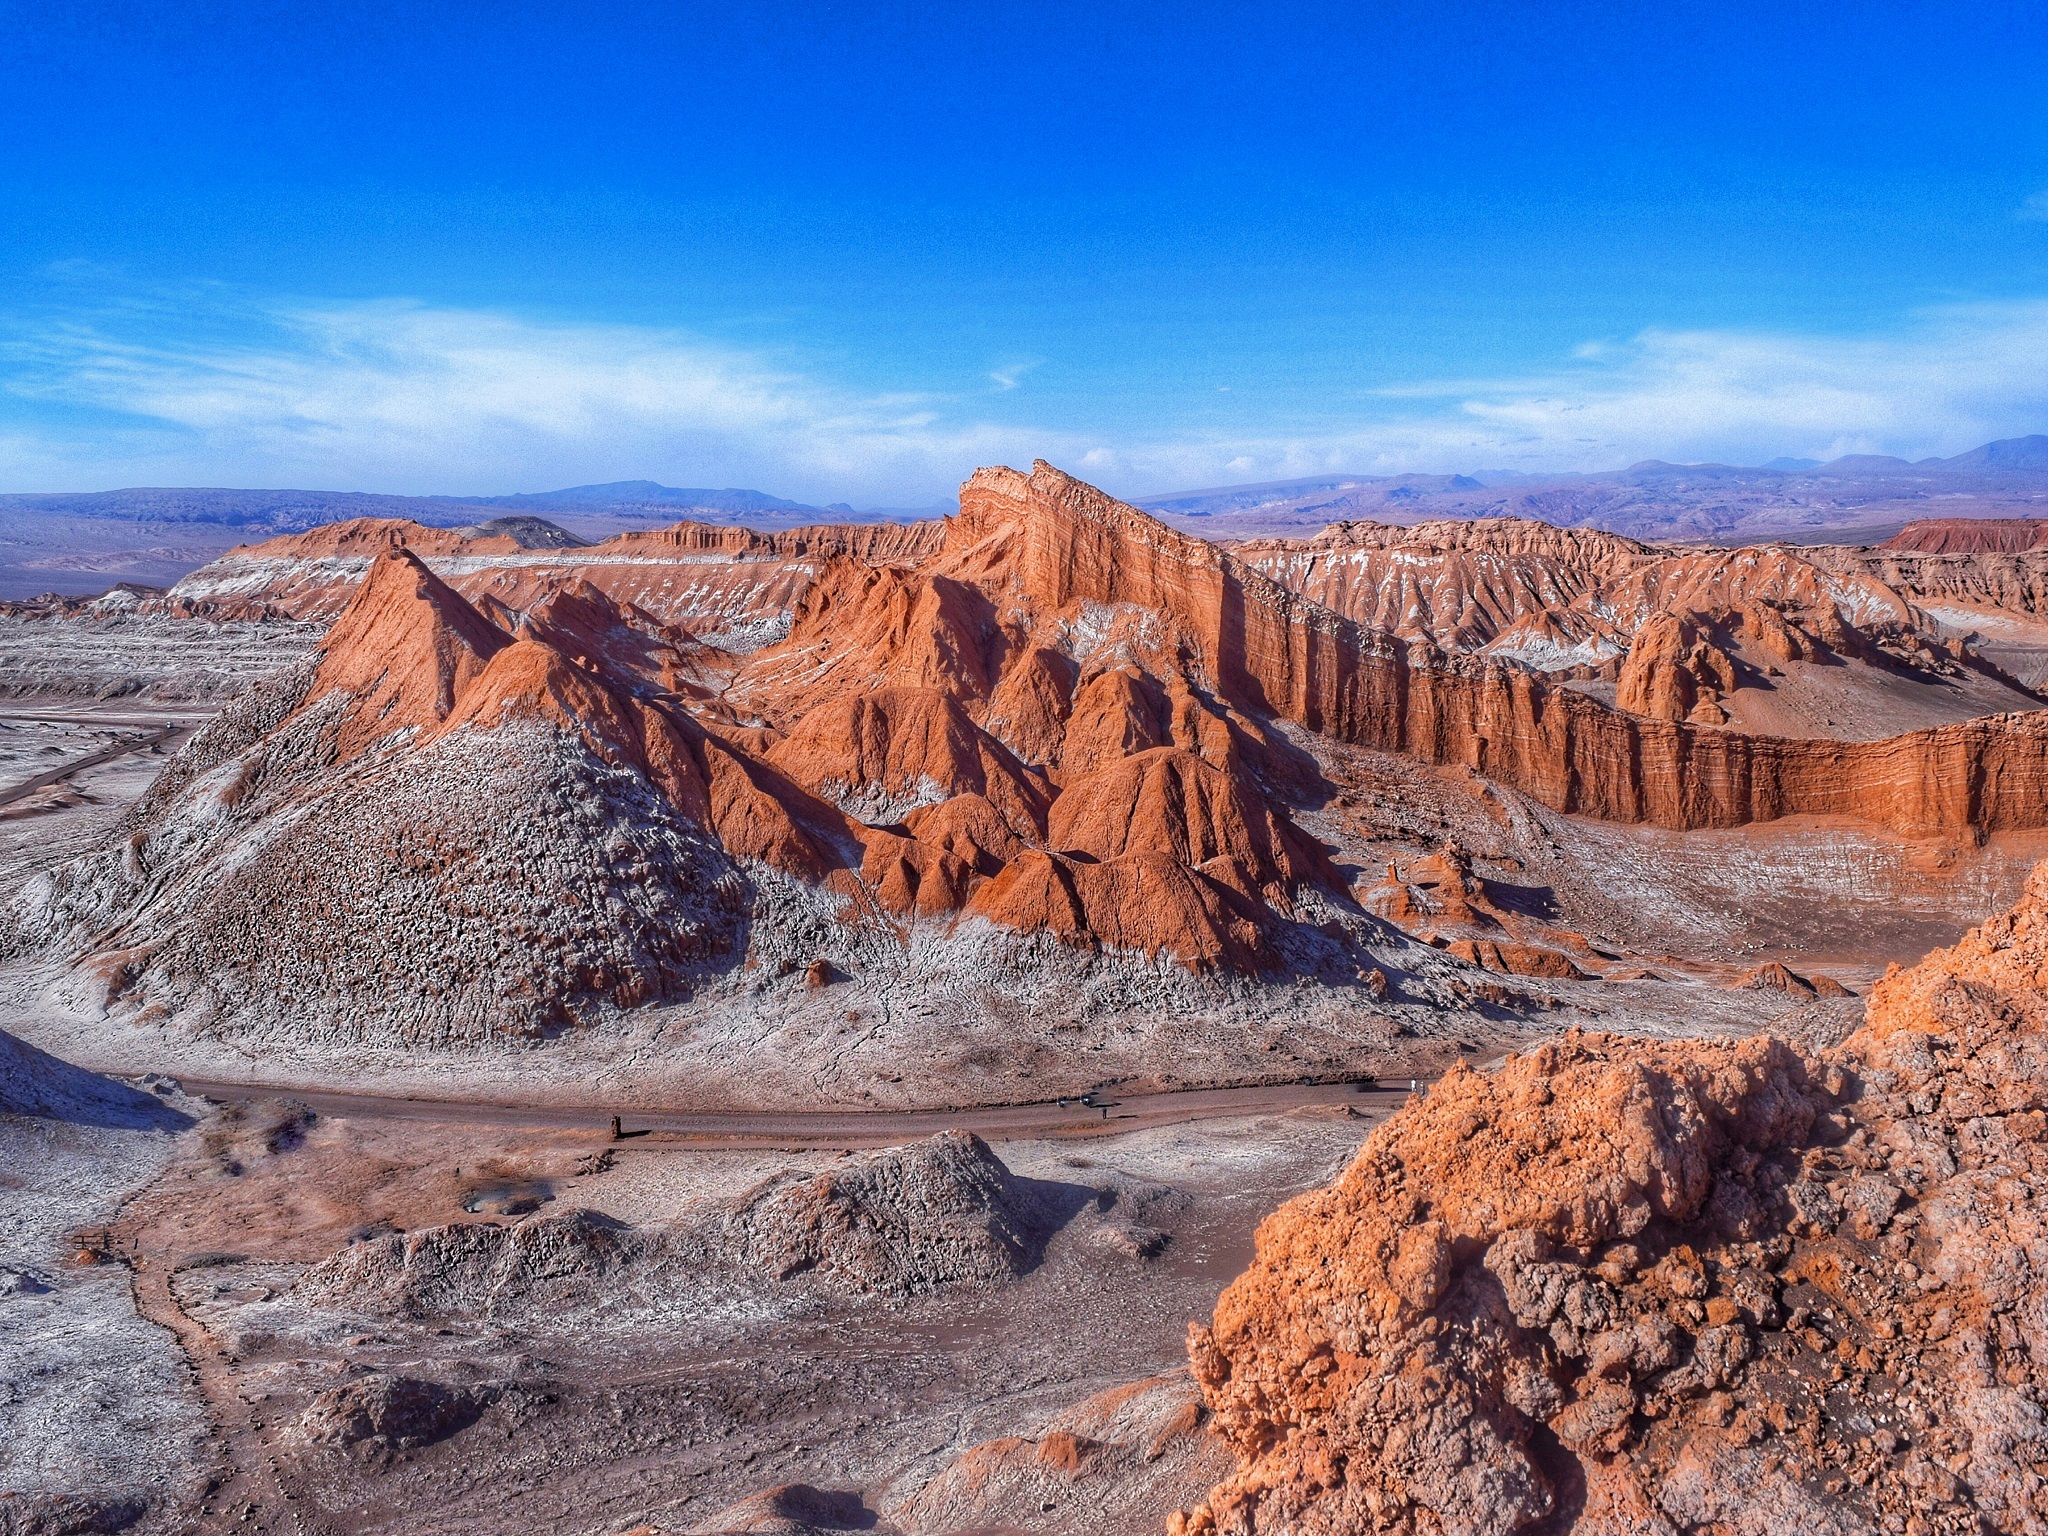 20 photos that will make you want to visit Chile right now